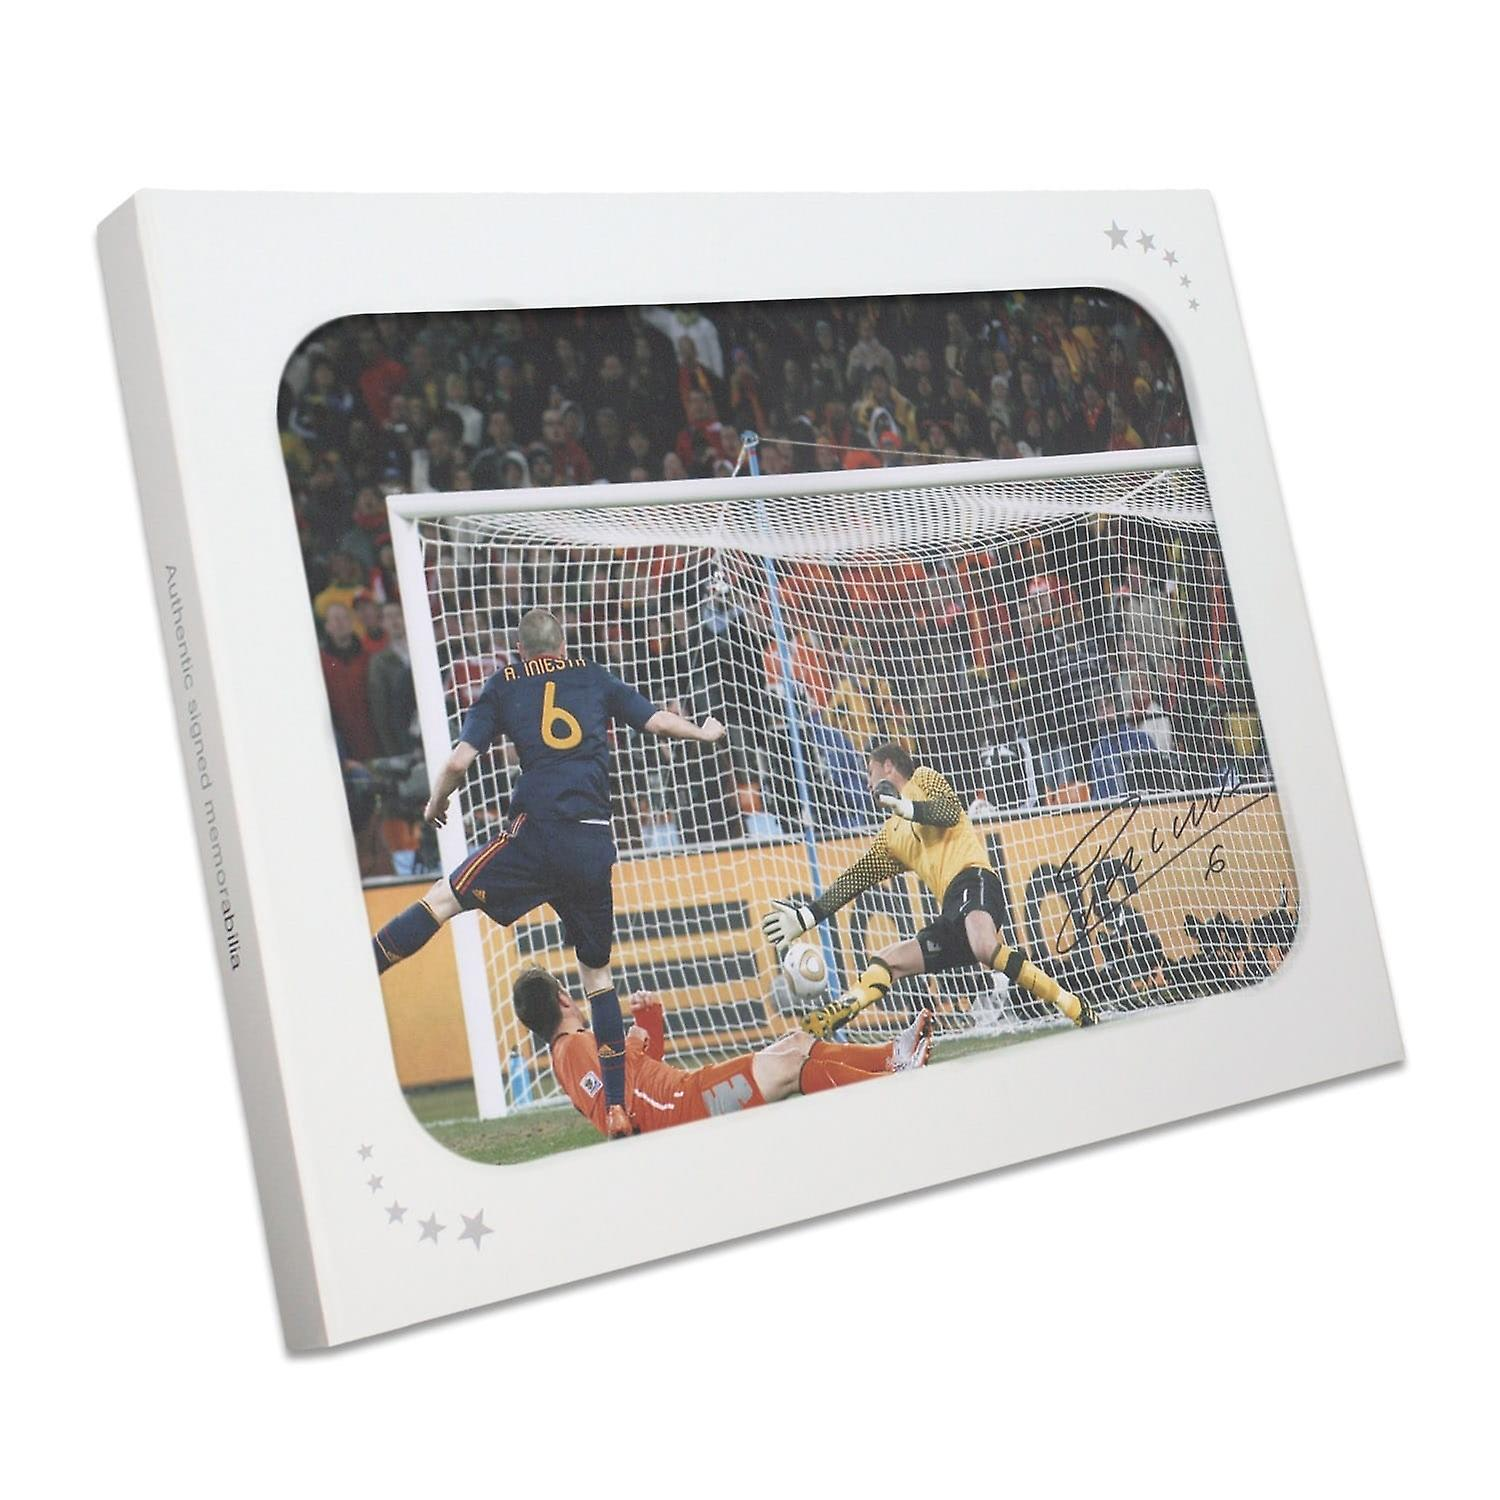 Andres Iniesta Signed Spain Photo  World Cup 2010 Winning Goal In Gift Box 37a8ee4704b6d